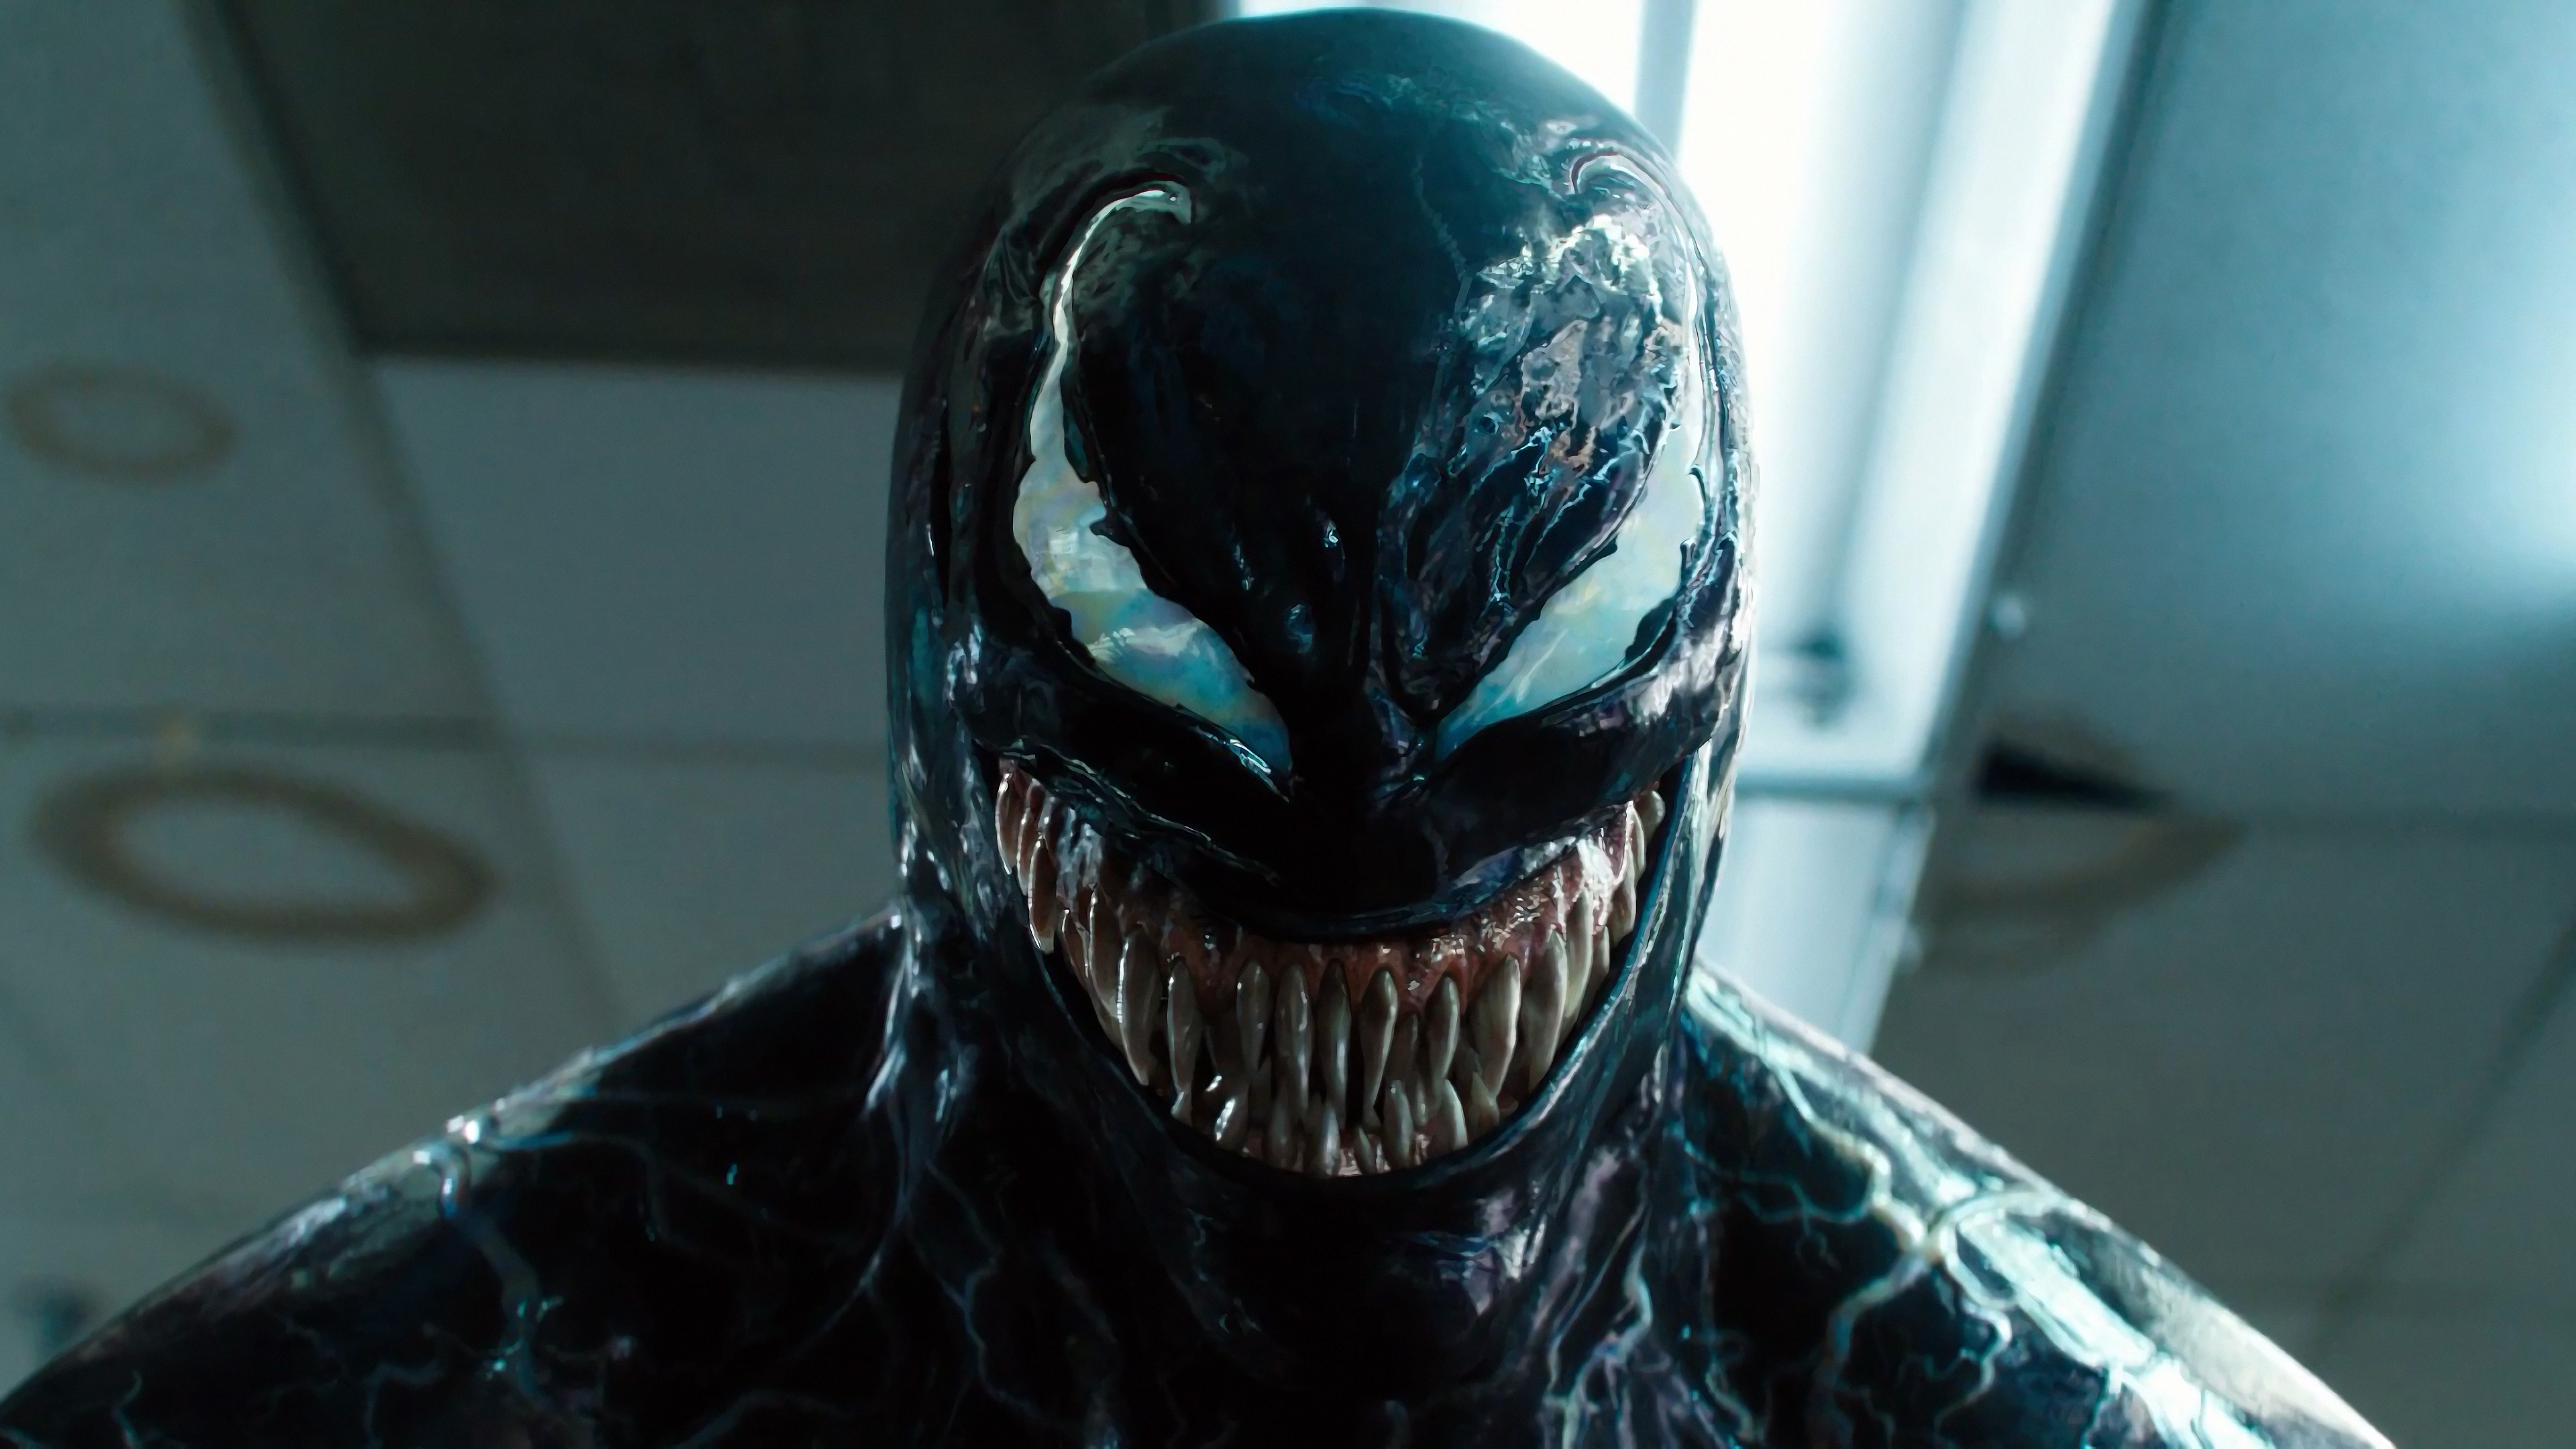 Venom 2018 movie 4k hd movies 4k wallpapers images - Venom hd wallpaper android ...